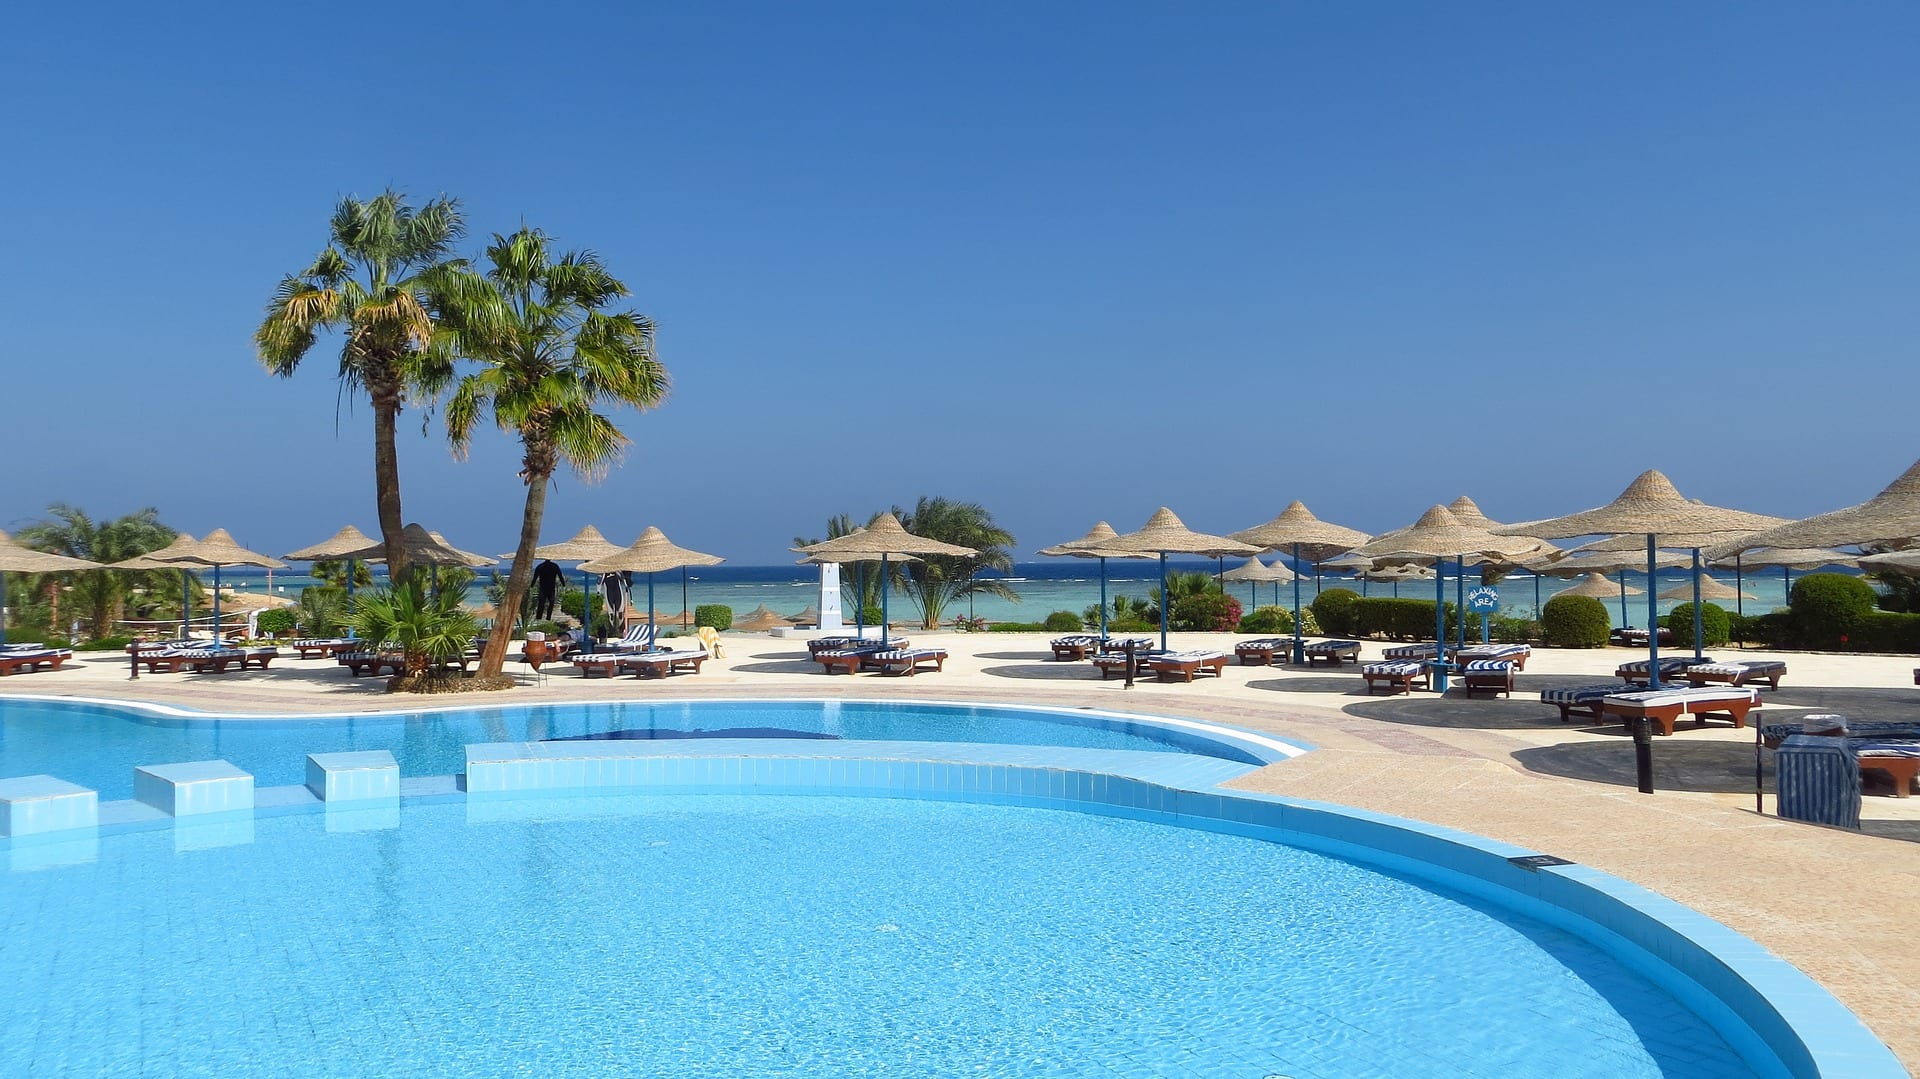 Hotel - Pool - Spa - Holiday - Beachfront - Costa Del Sol